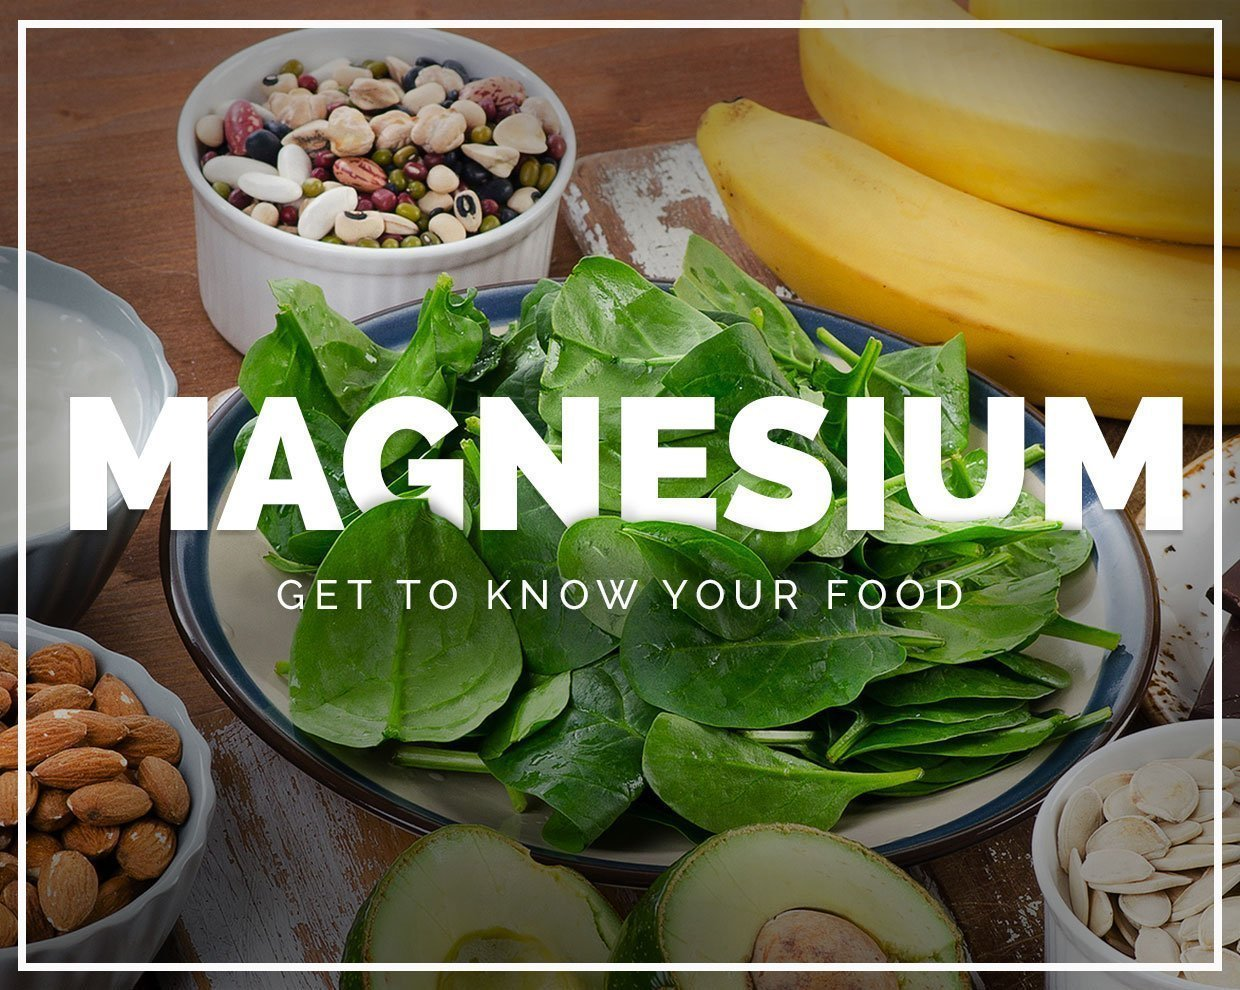 Why do I need magnesium?